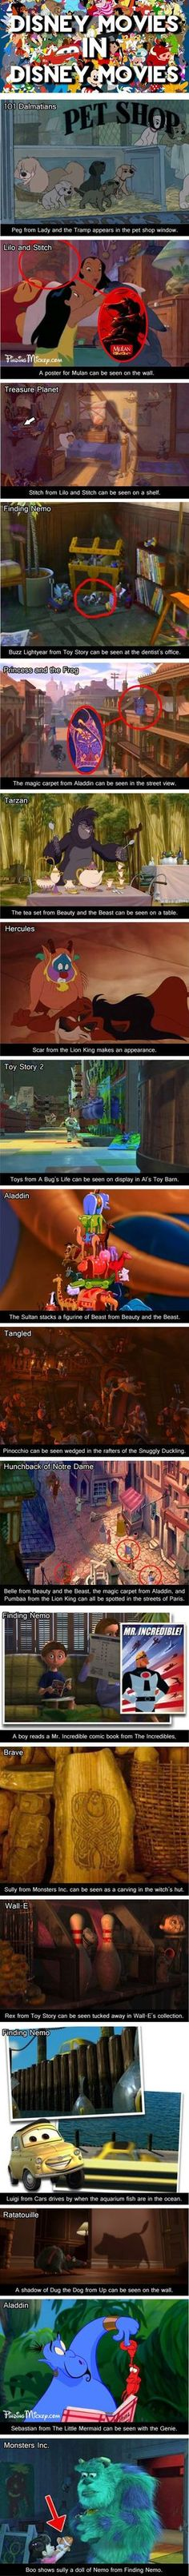 funny disney memes Disney movies within movies - Typical Pixar;) one or two I hadnt noticed before. funny meme so true Walt Disney, Disney Pixar, Disney Facts, Disney And Dreamworks, Disney Magic, Funny Disney, Disney Characters, Disney Nerd, Disney Fanatic